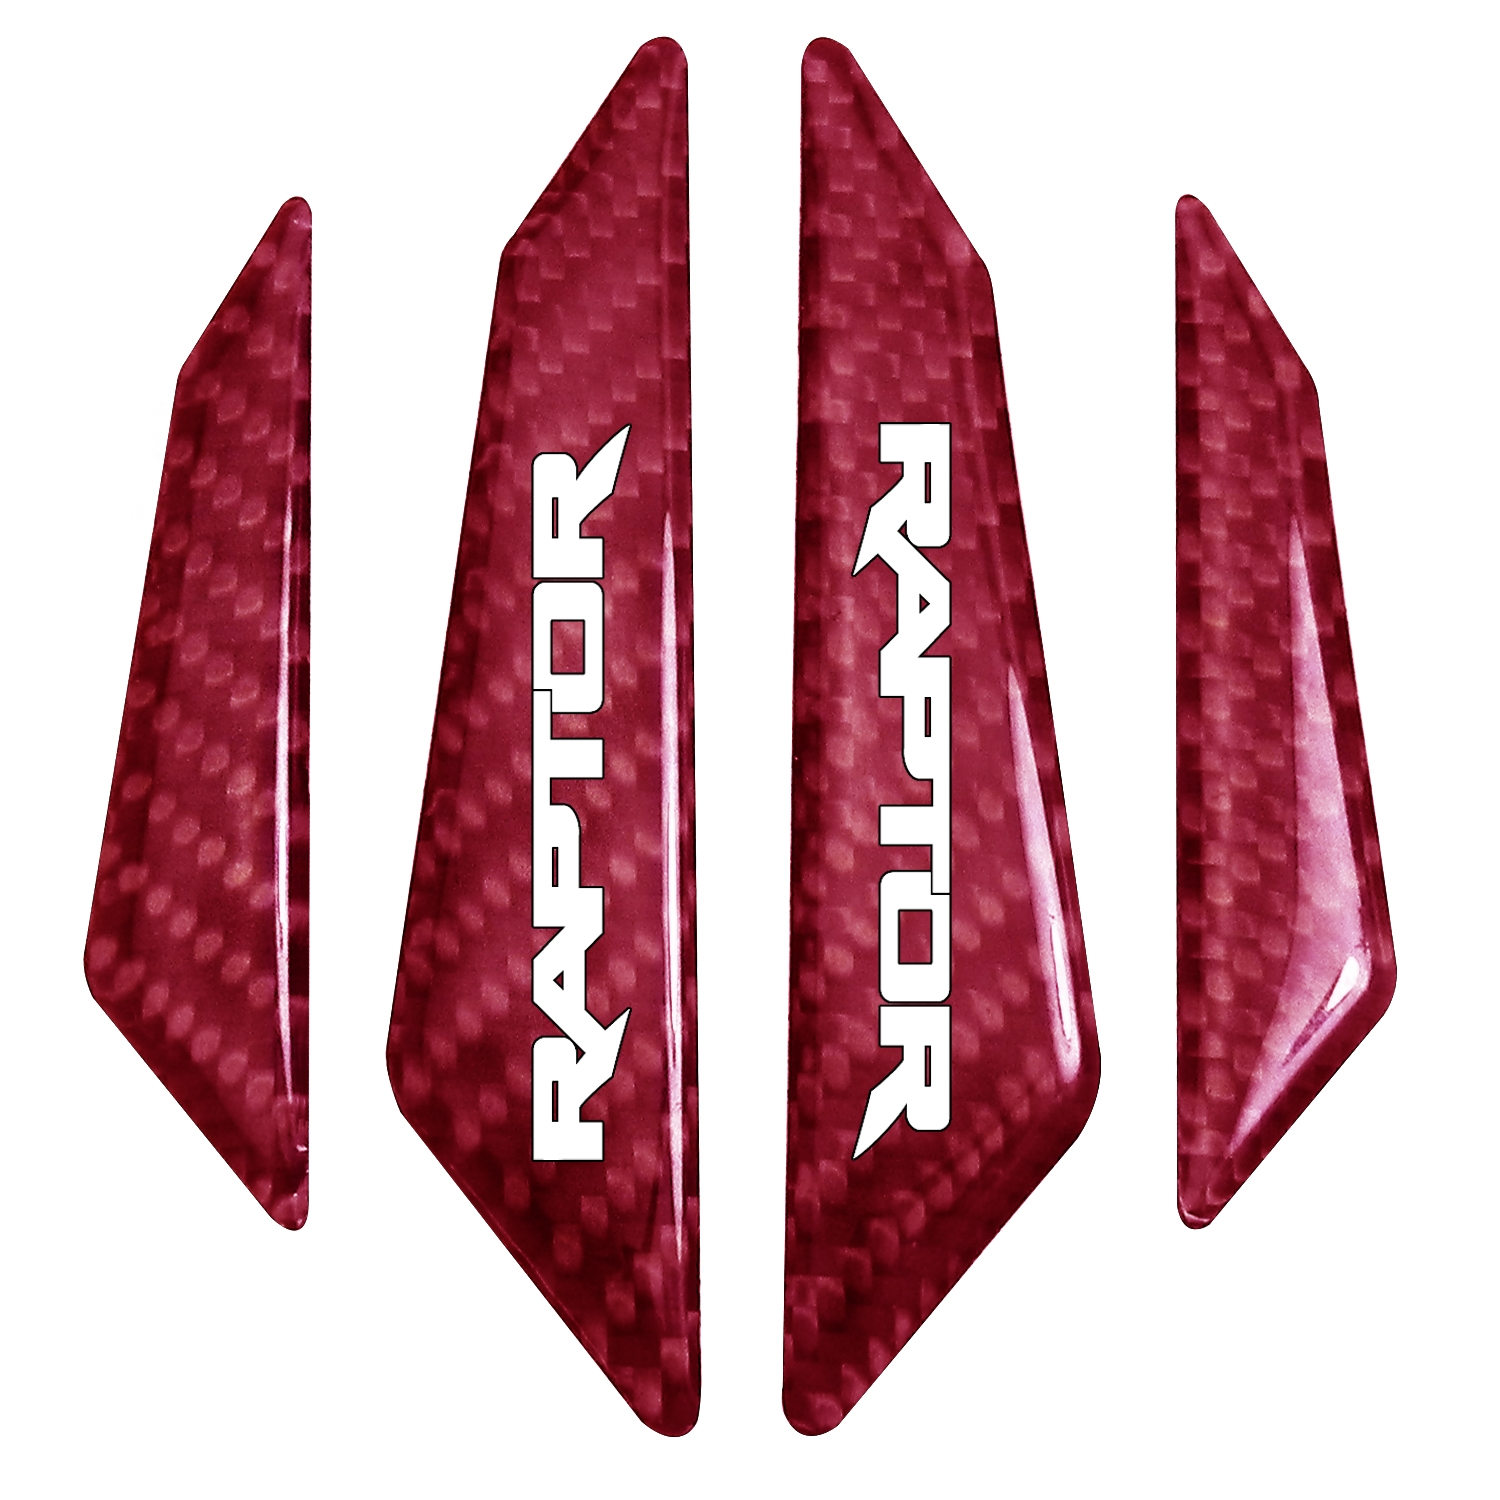 Ford F-150 Raptor Real Red Carbon Fiber Door Edge Guard Decal